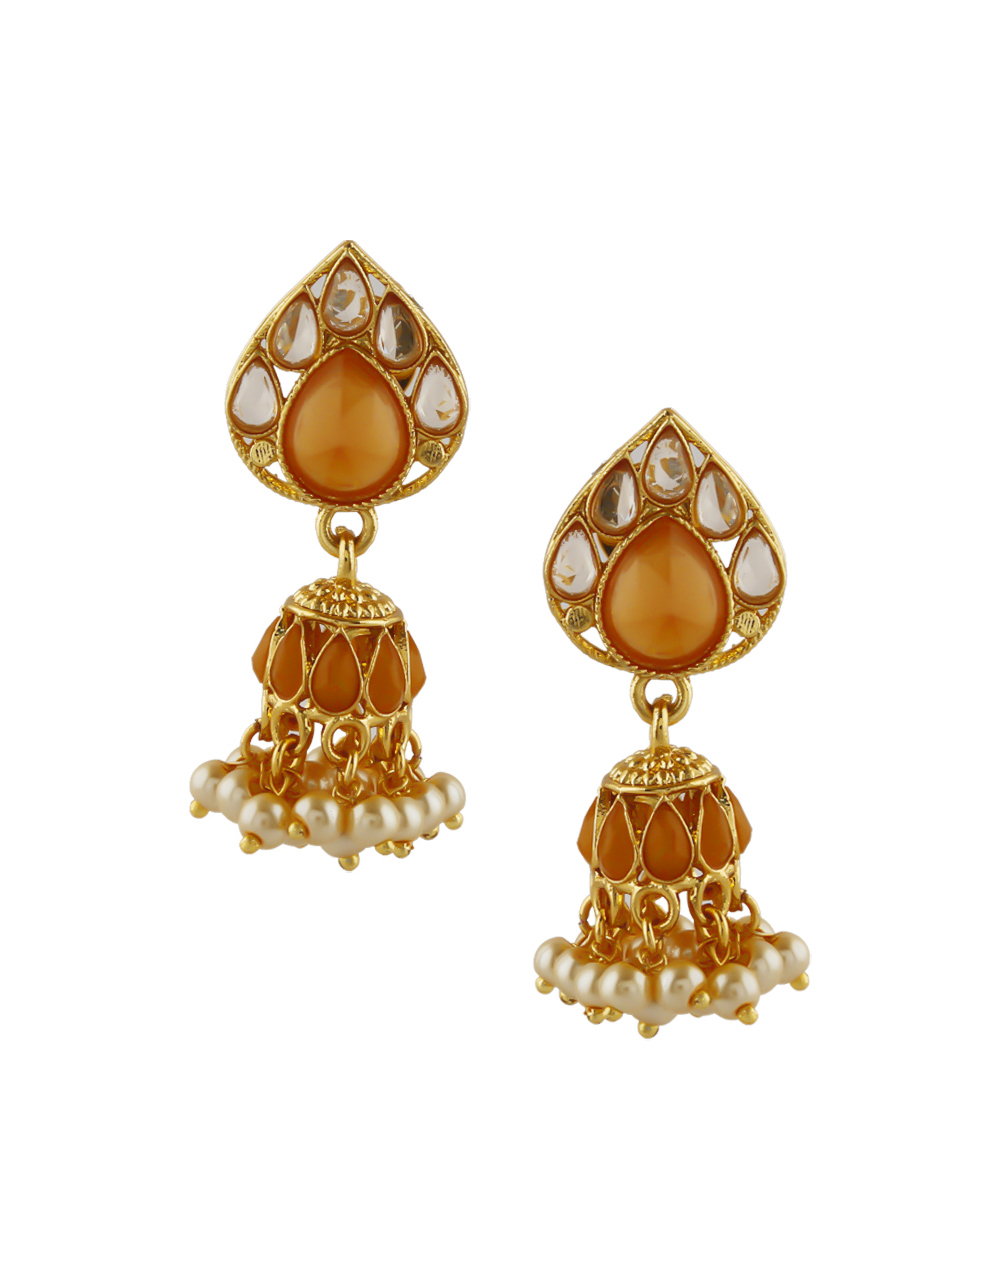 Orange Colour Gold Finish Pearls Styled Zumki Earrings